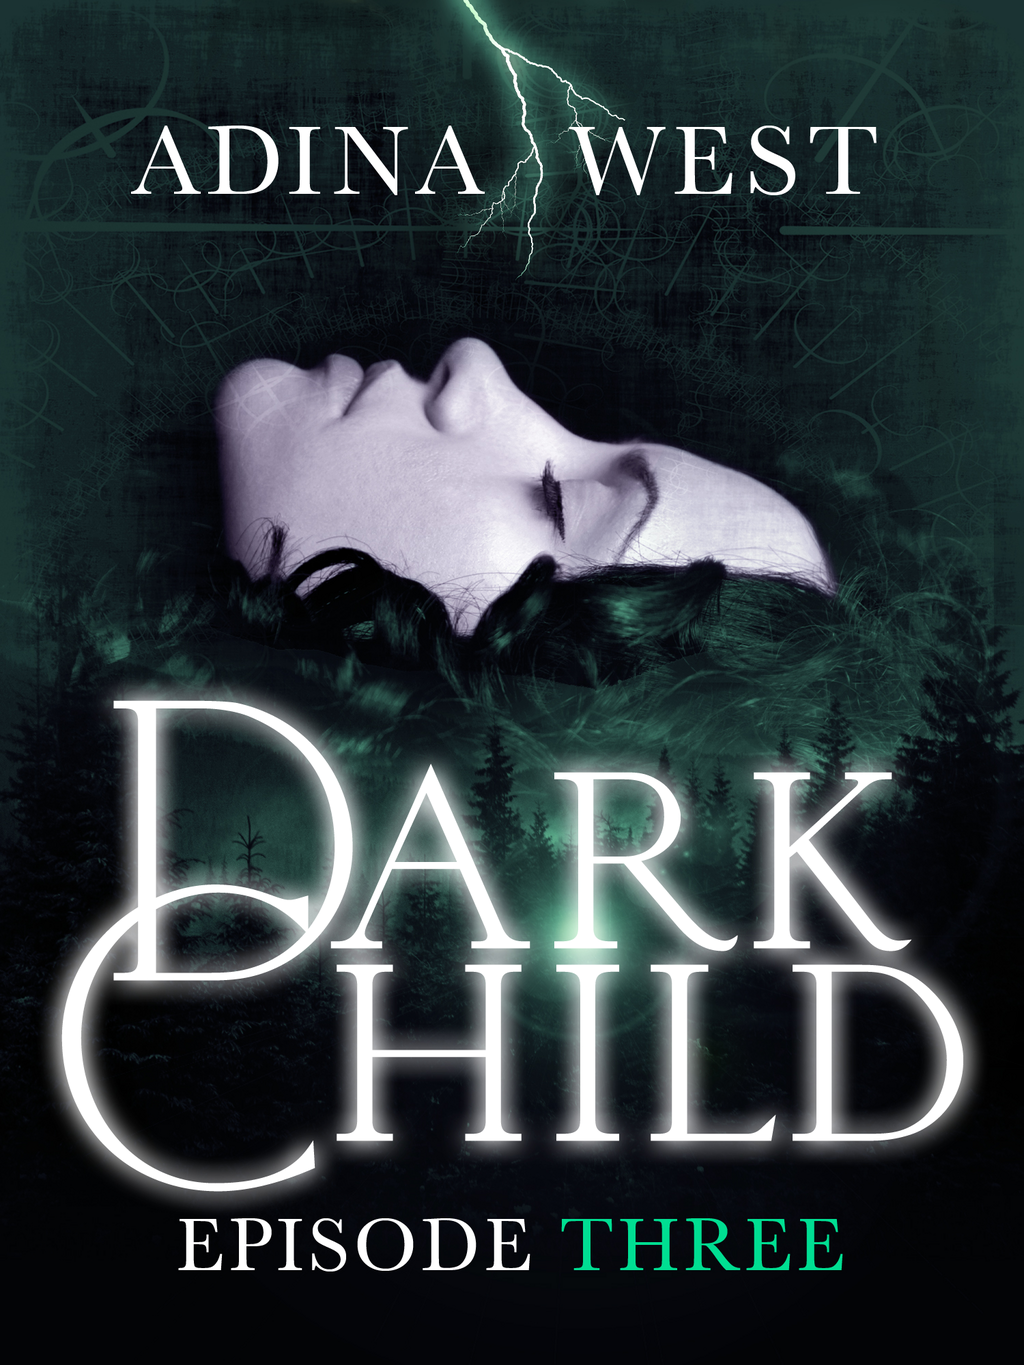 Dark Child: Episode 3